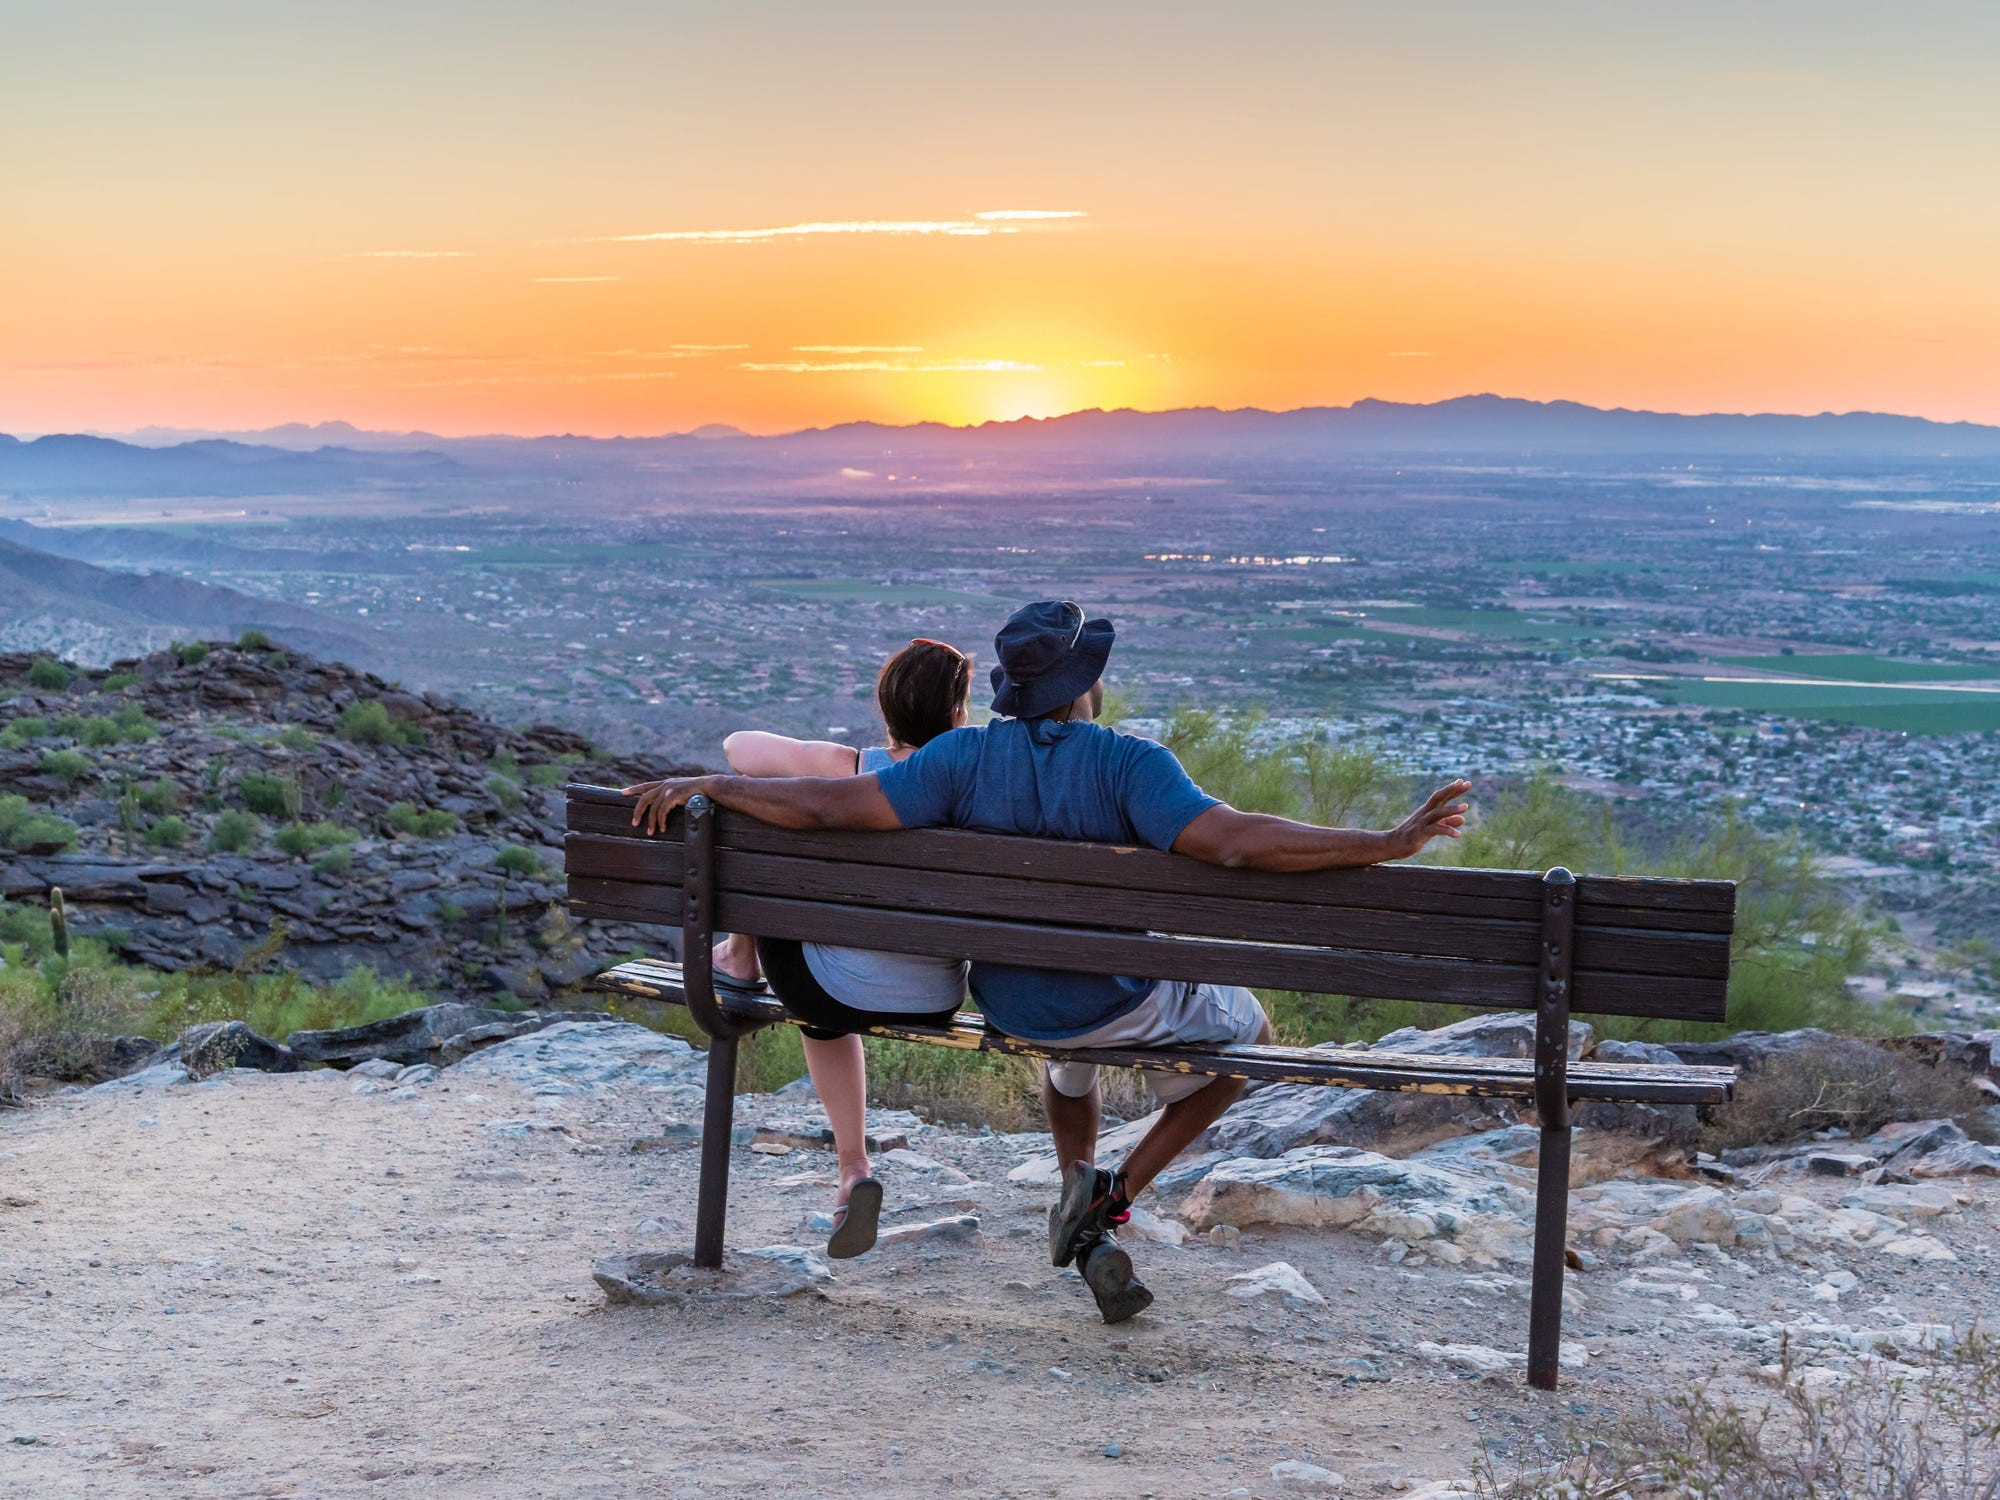 Two people sitting on a bench looking at the sunset.